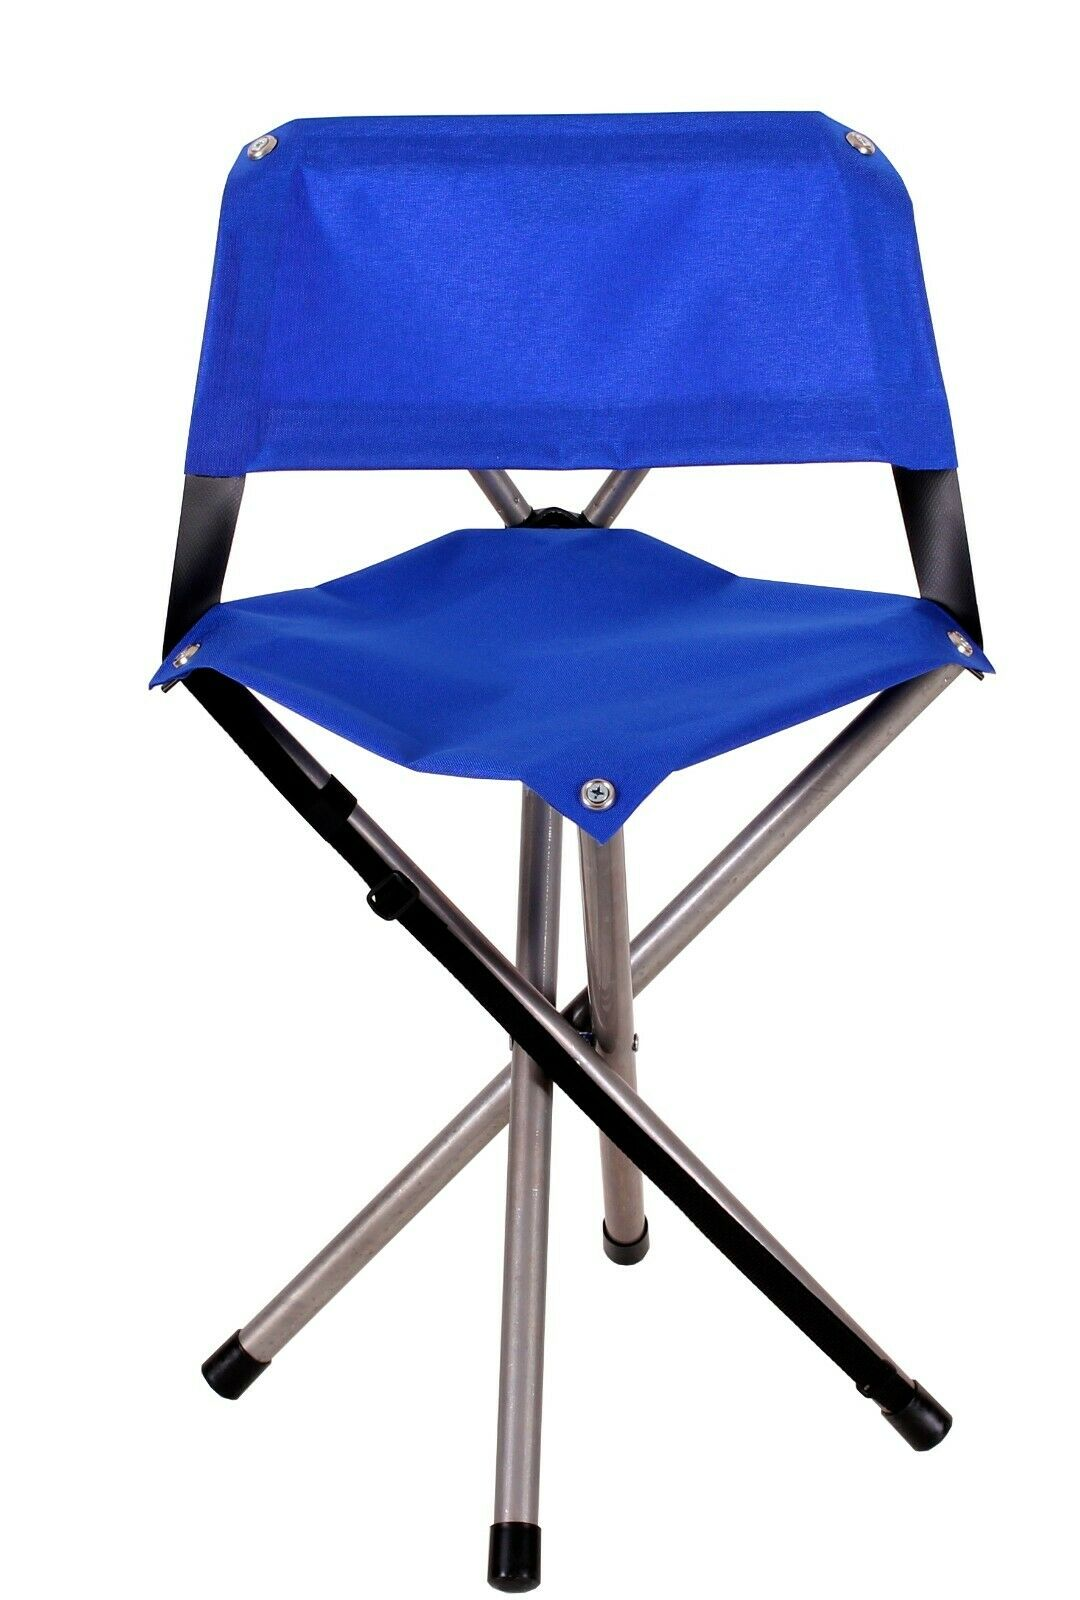 Camp Time Roll-a-Chair bluee Portable Compact Lightweight Camping Chair  USA Made  clearance